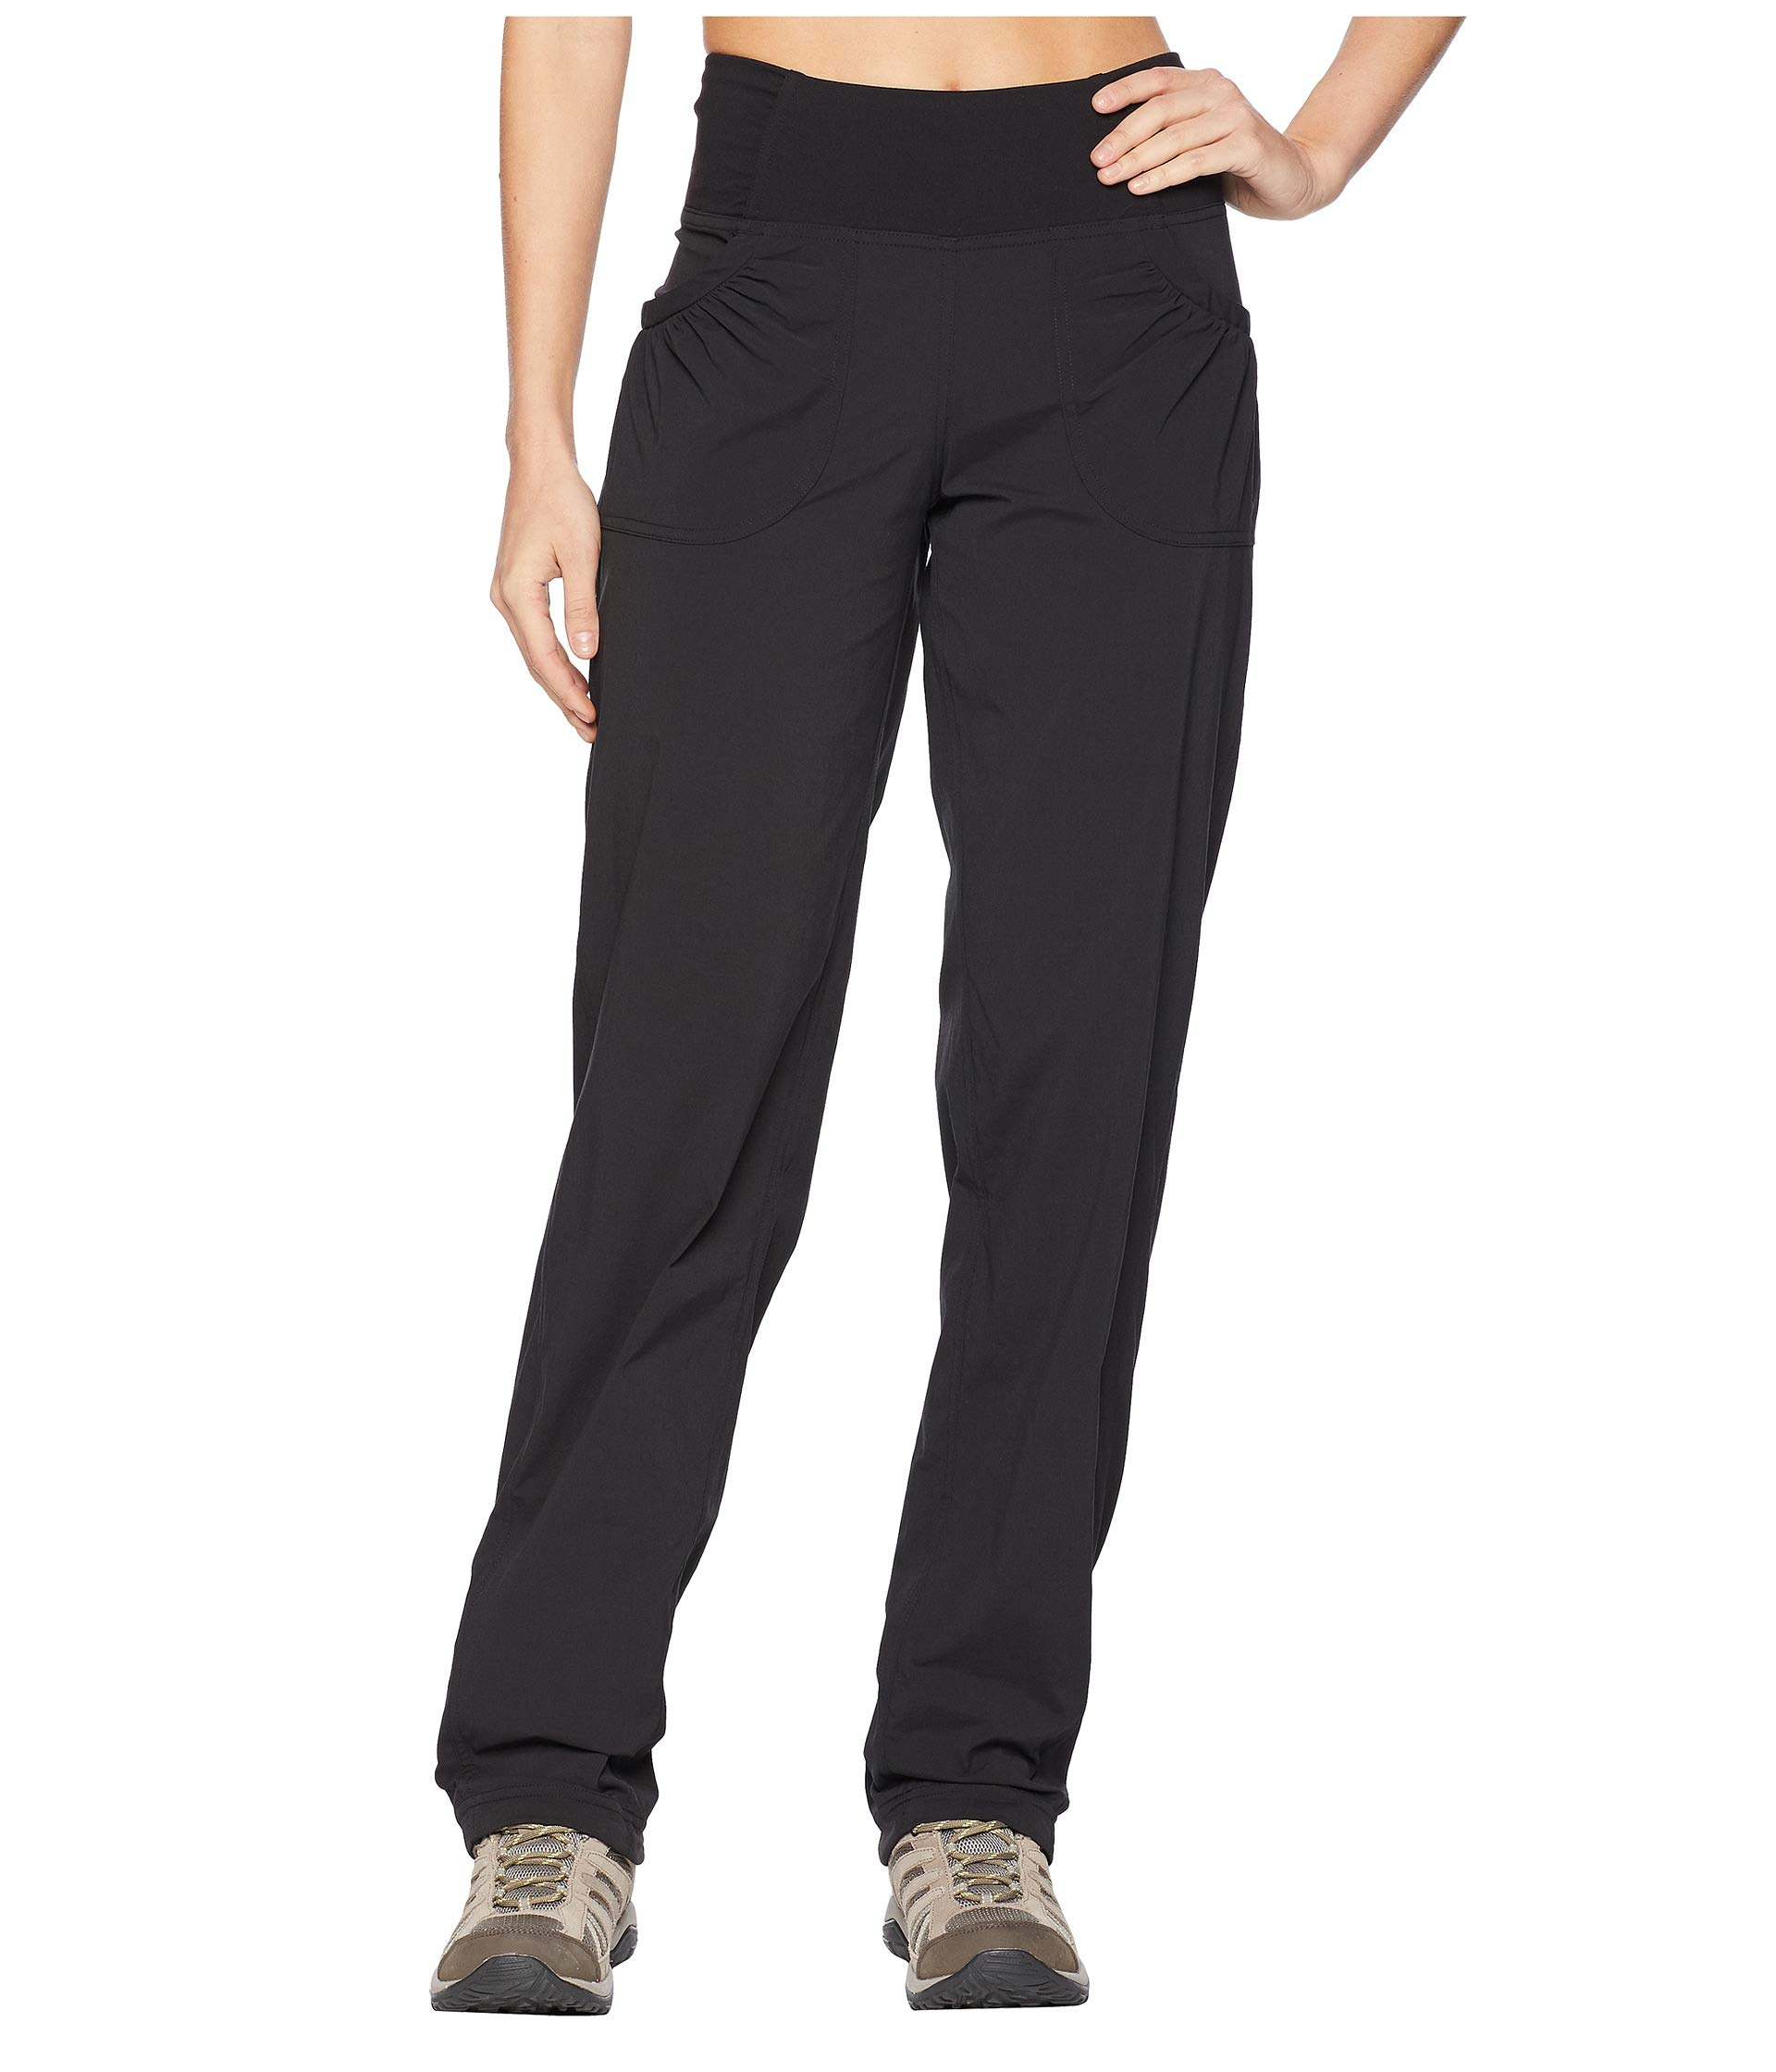 Prana Pants Summit Black Prana Black Pants Black Pants Summit Prana Summit gwBHrgnq